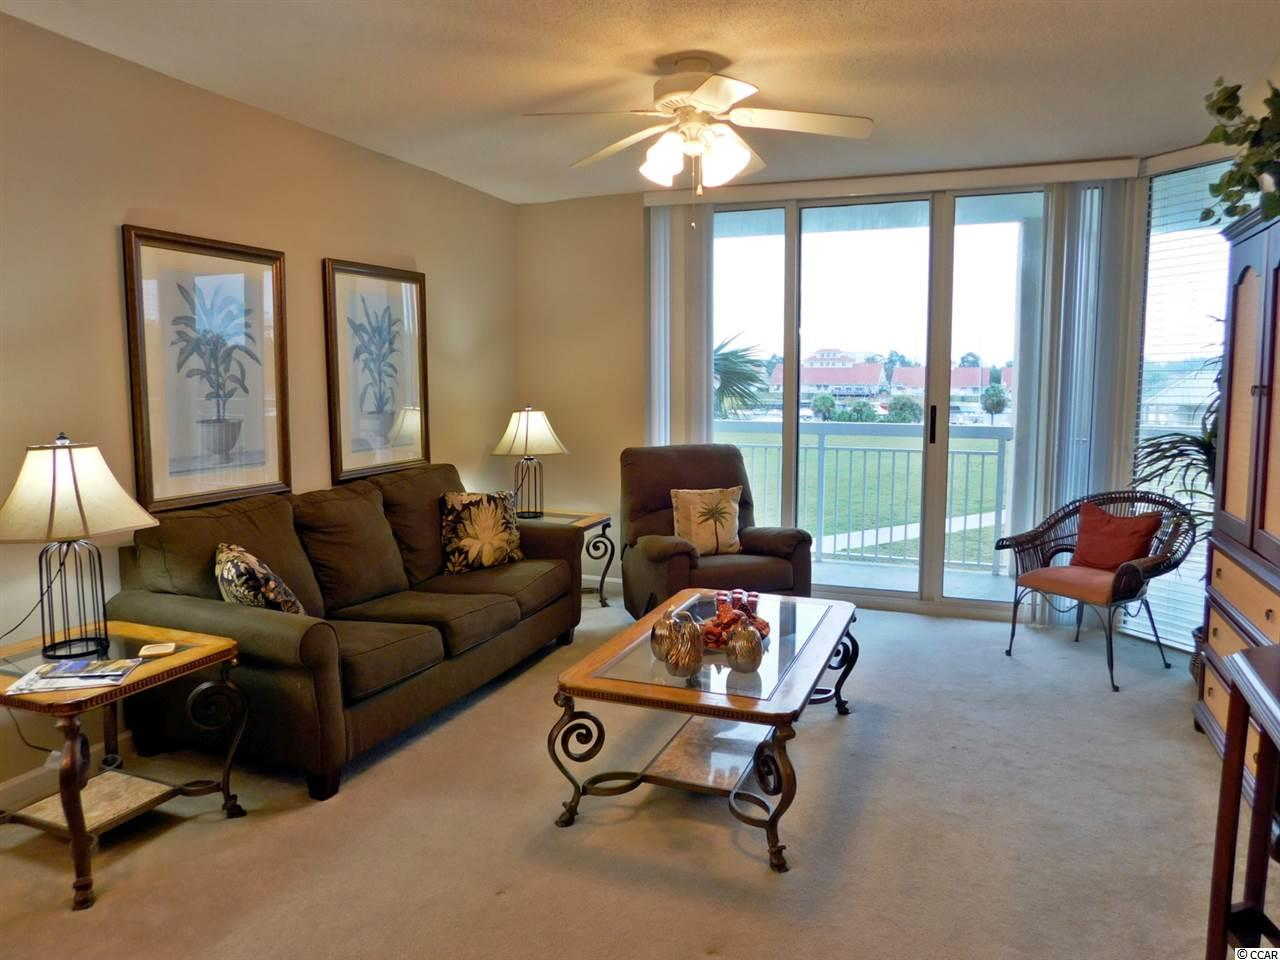 North Tower Barefoot Resort condo for sale in North Myrtle Beach, SC